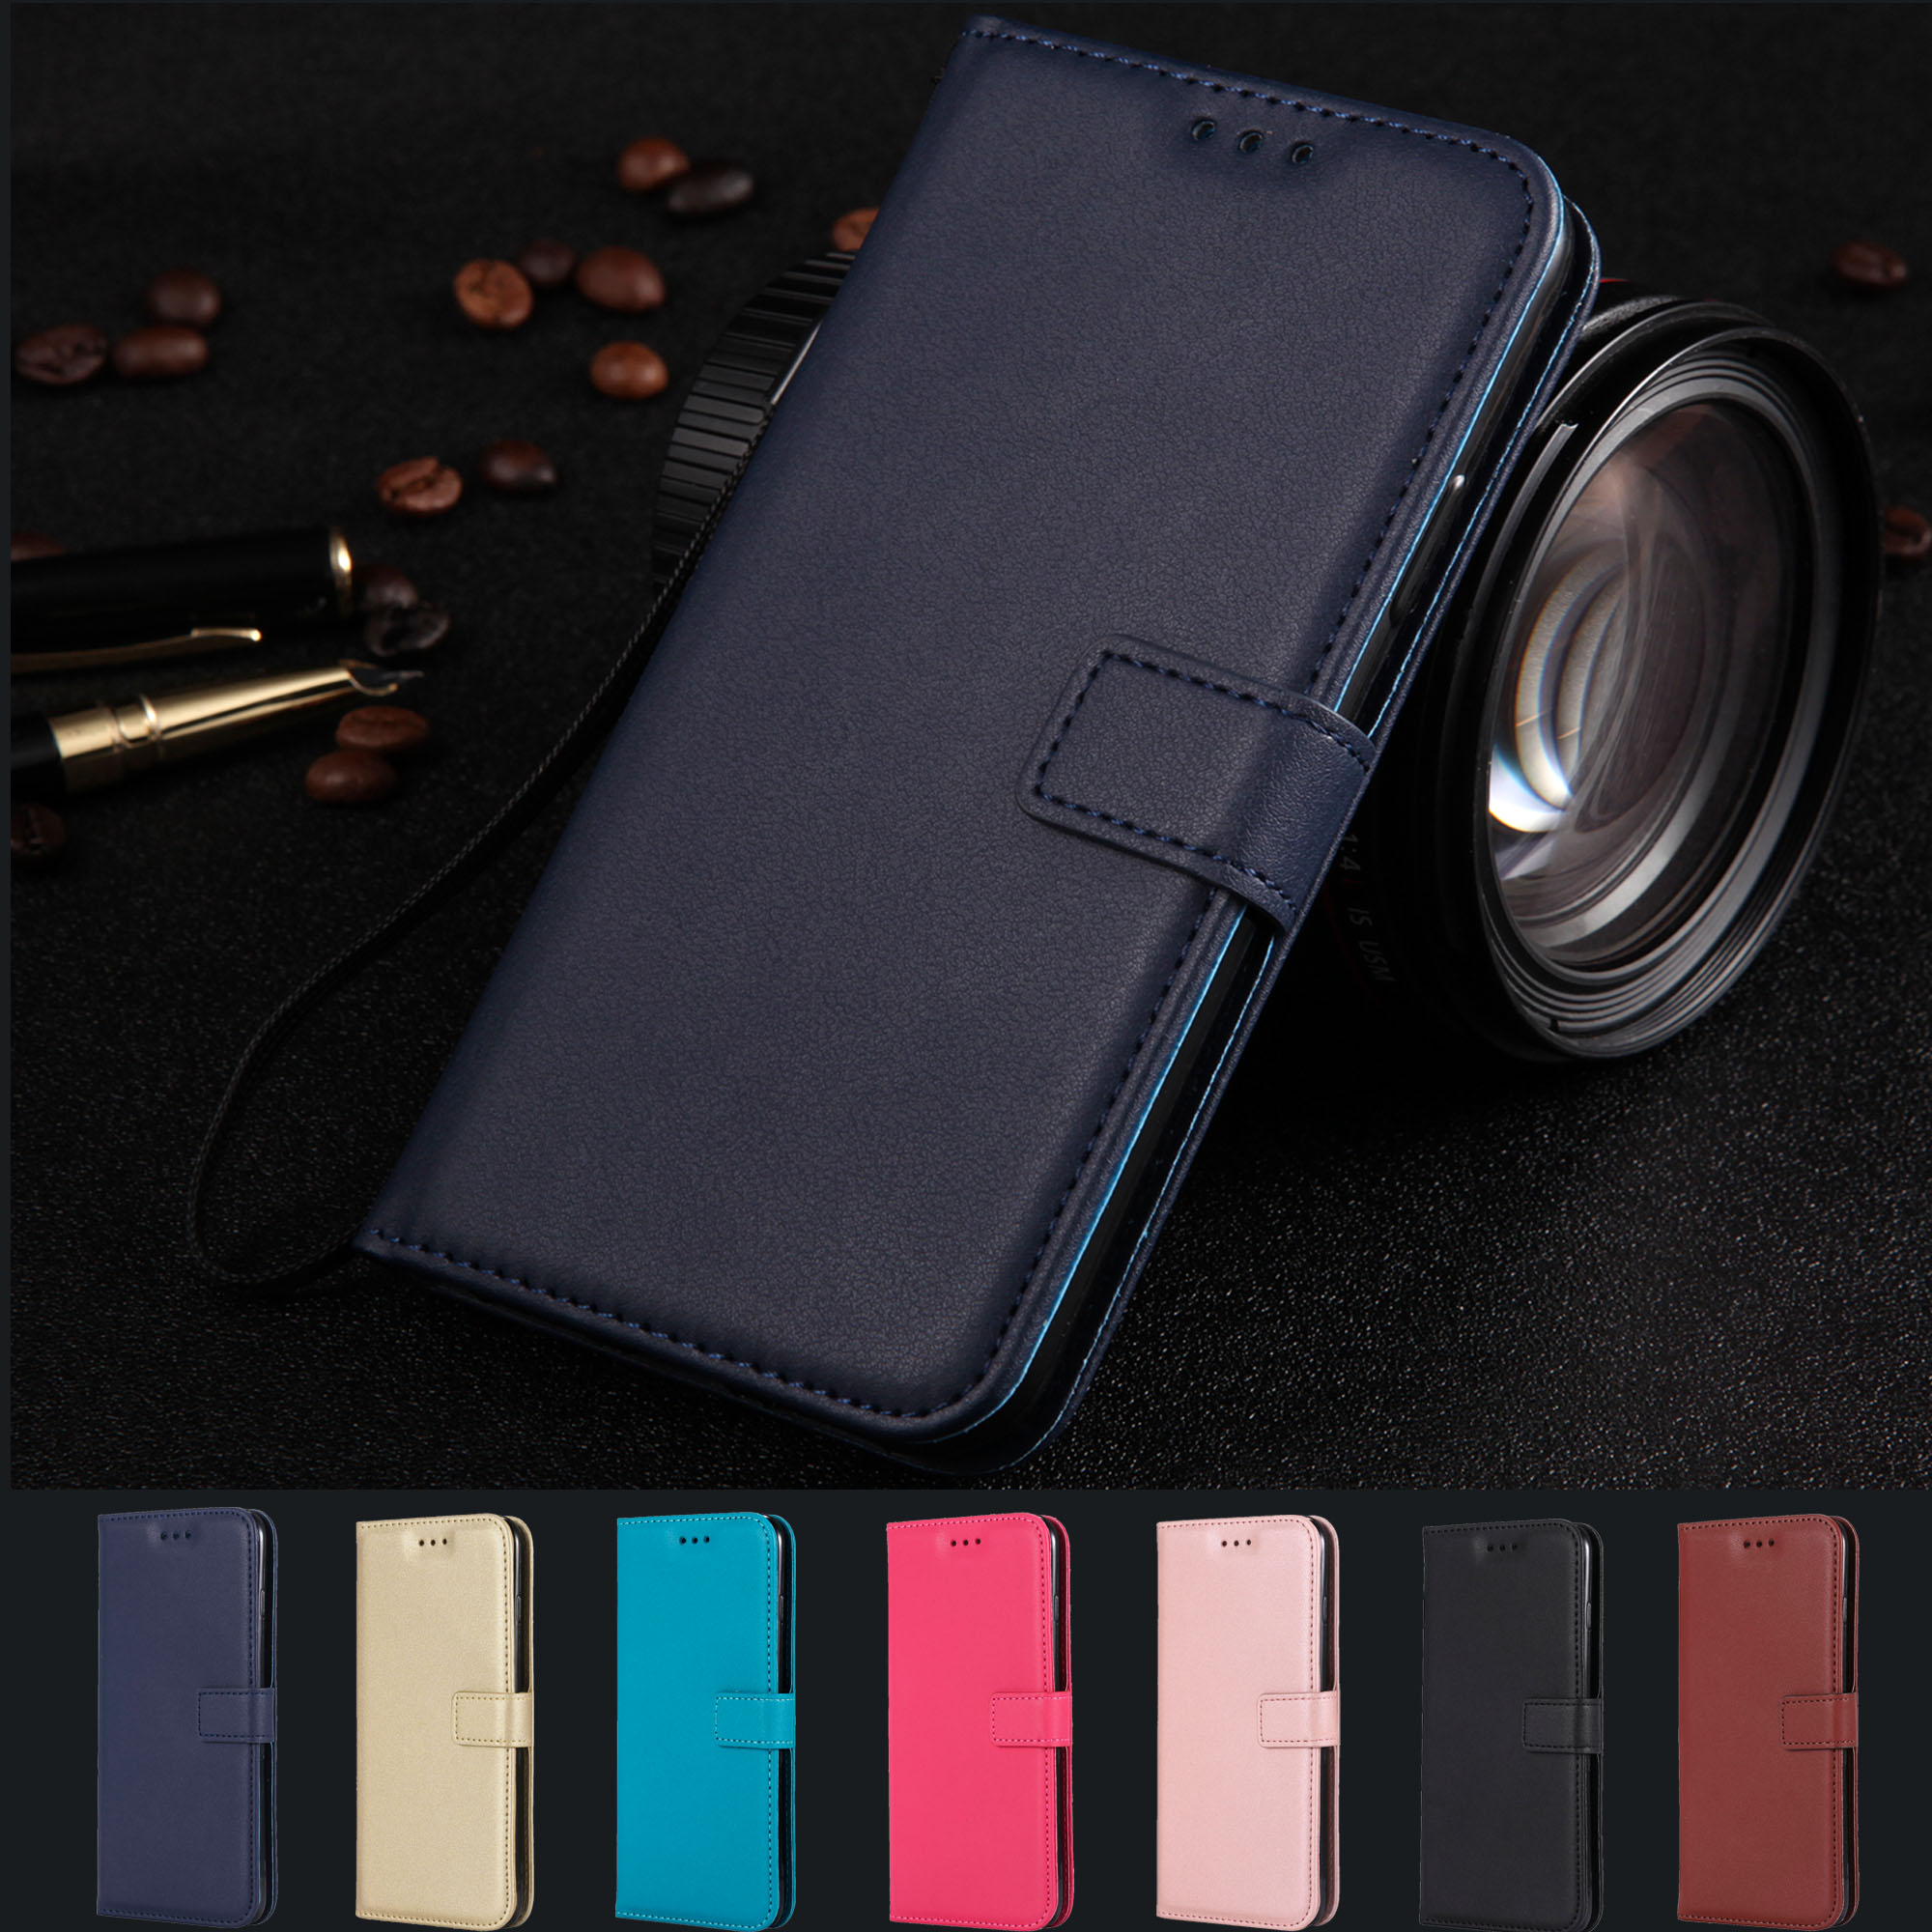 Leather case for Nokia 5 6 3 8 9 cases coque <font><b>TA</b></font> <font><b>1053</b></font> 1003 1032 1012 capa for Nokia N3310 N635 N630 N640 Shell Luxury Flip cover image